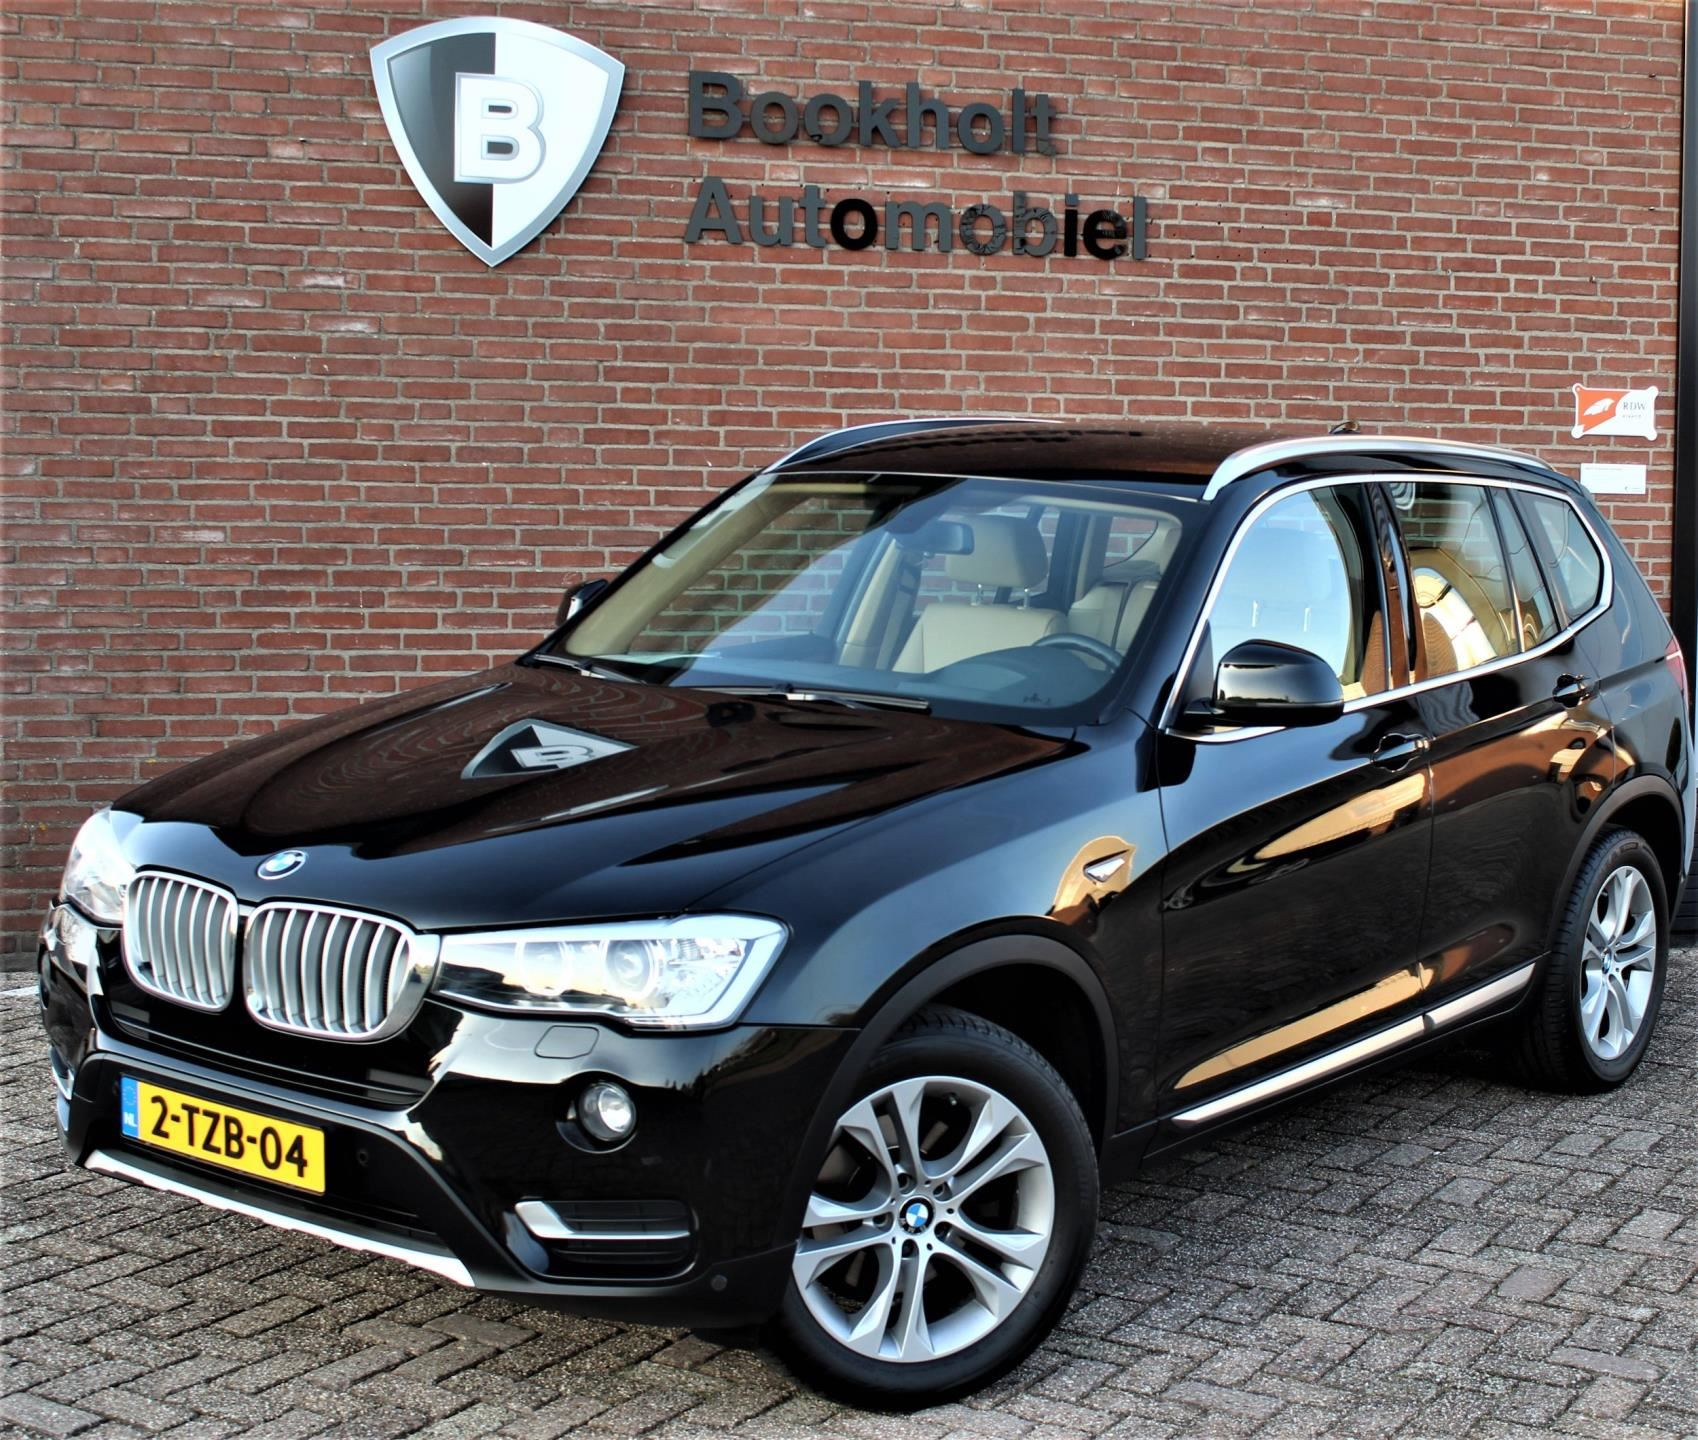 BMW X3 occasion - Bookholt Automobiel